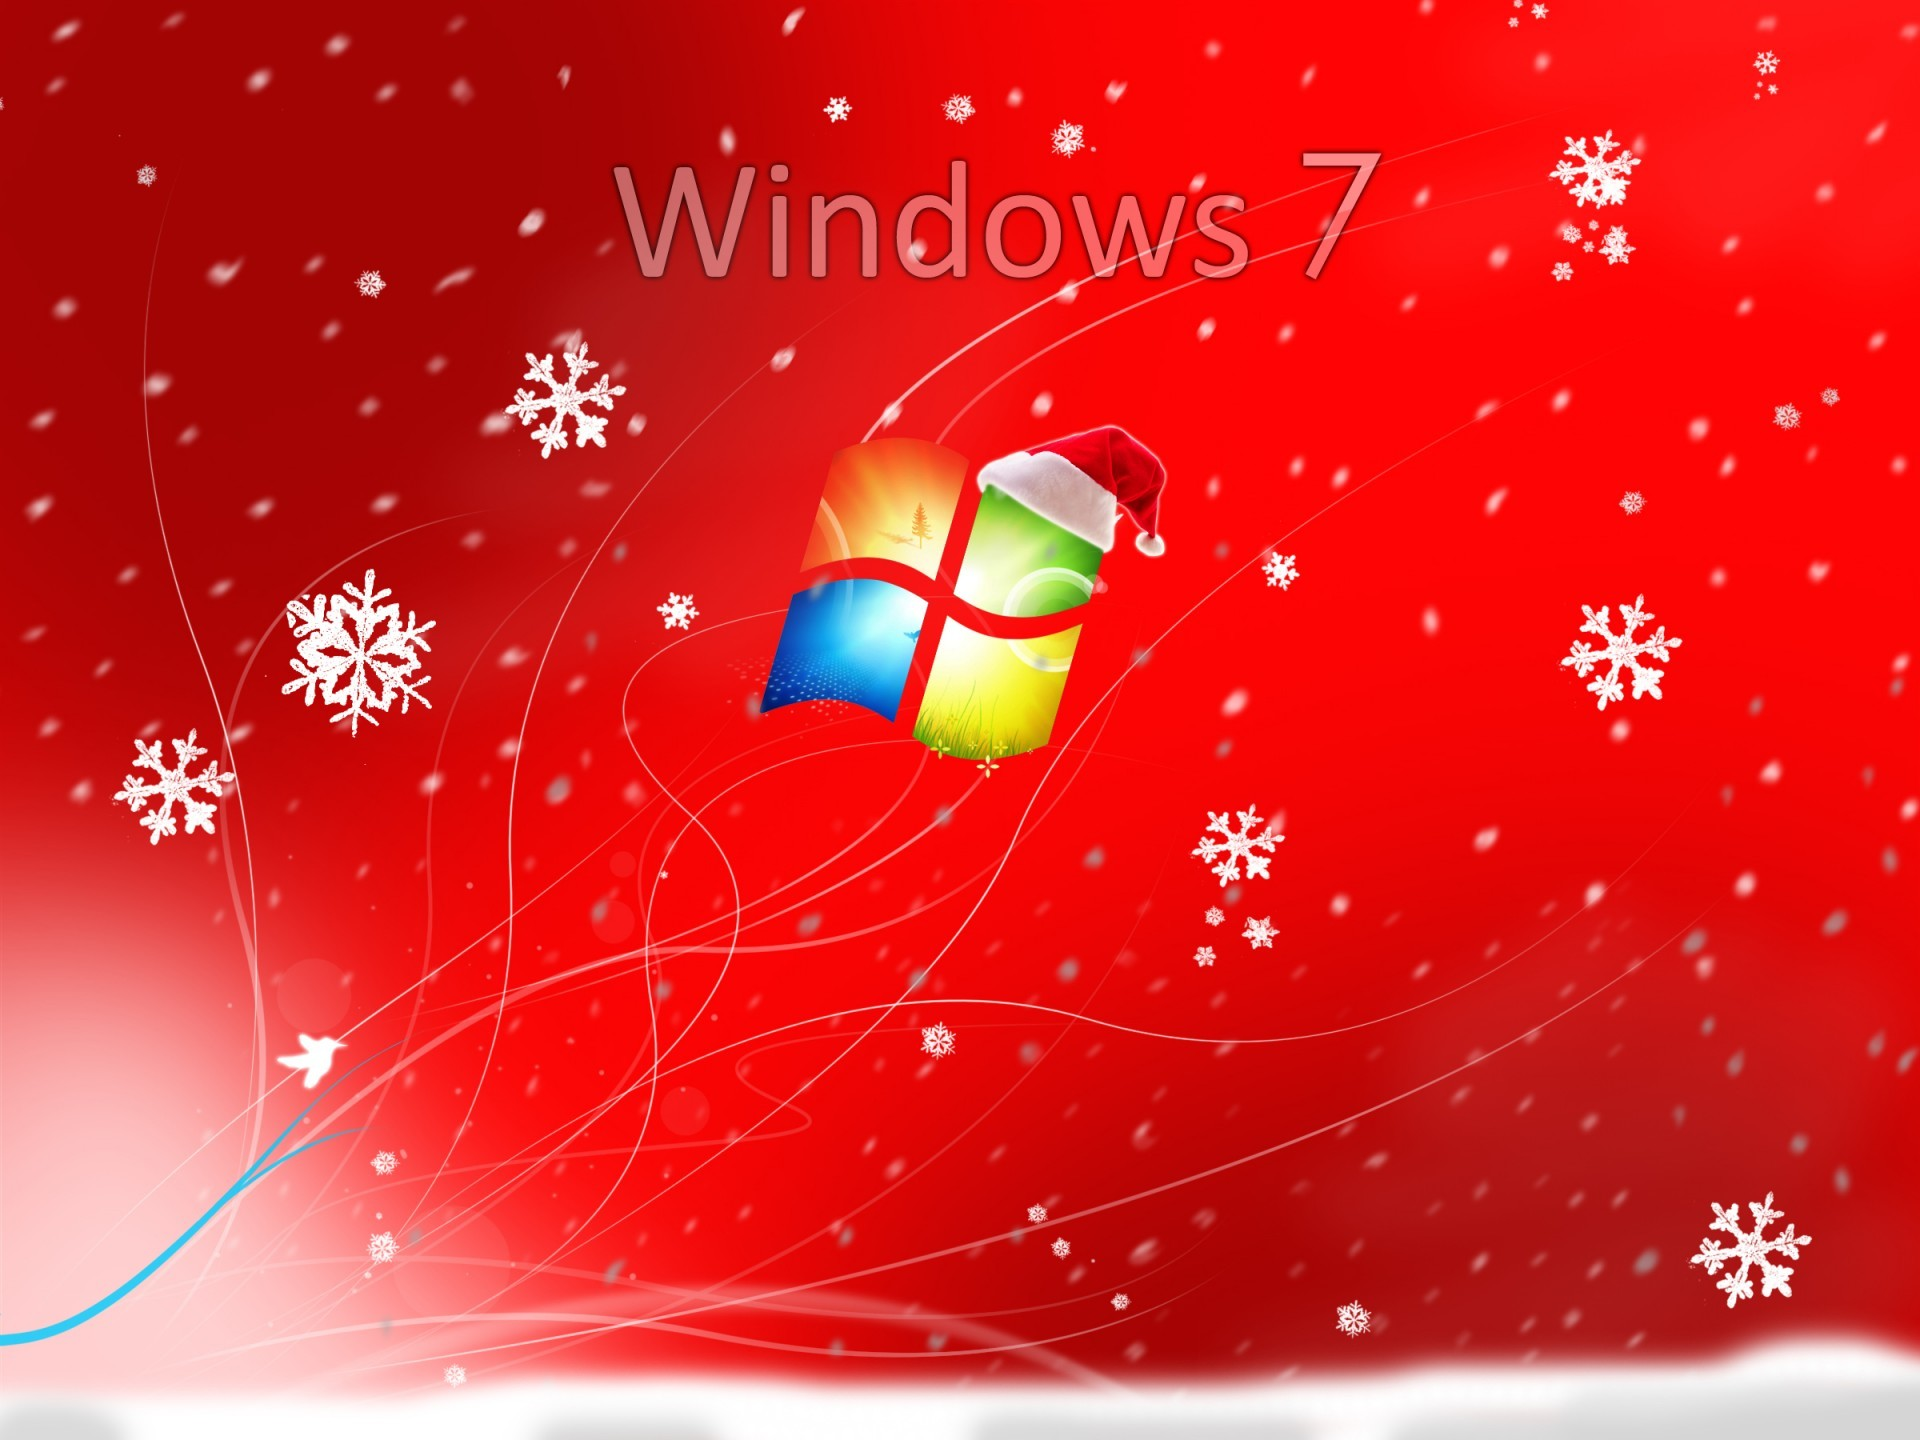 Christmas Wallpapers for Windows 7 HD Wallpaper